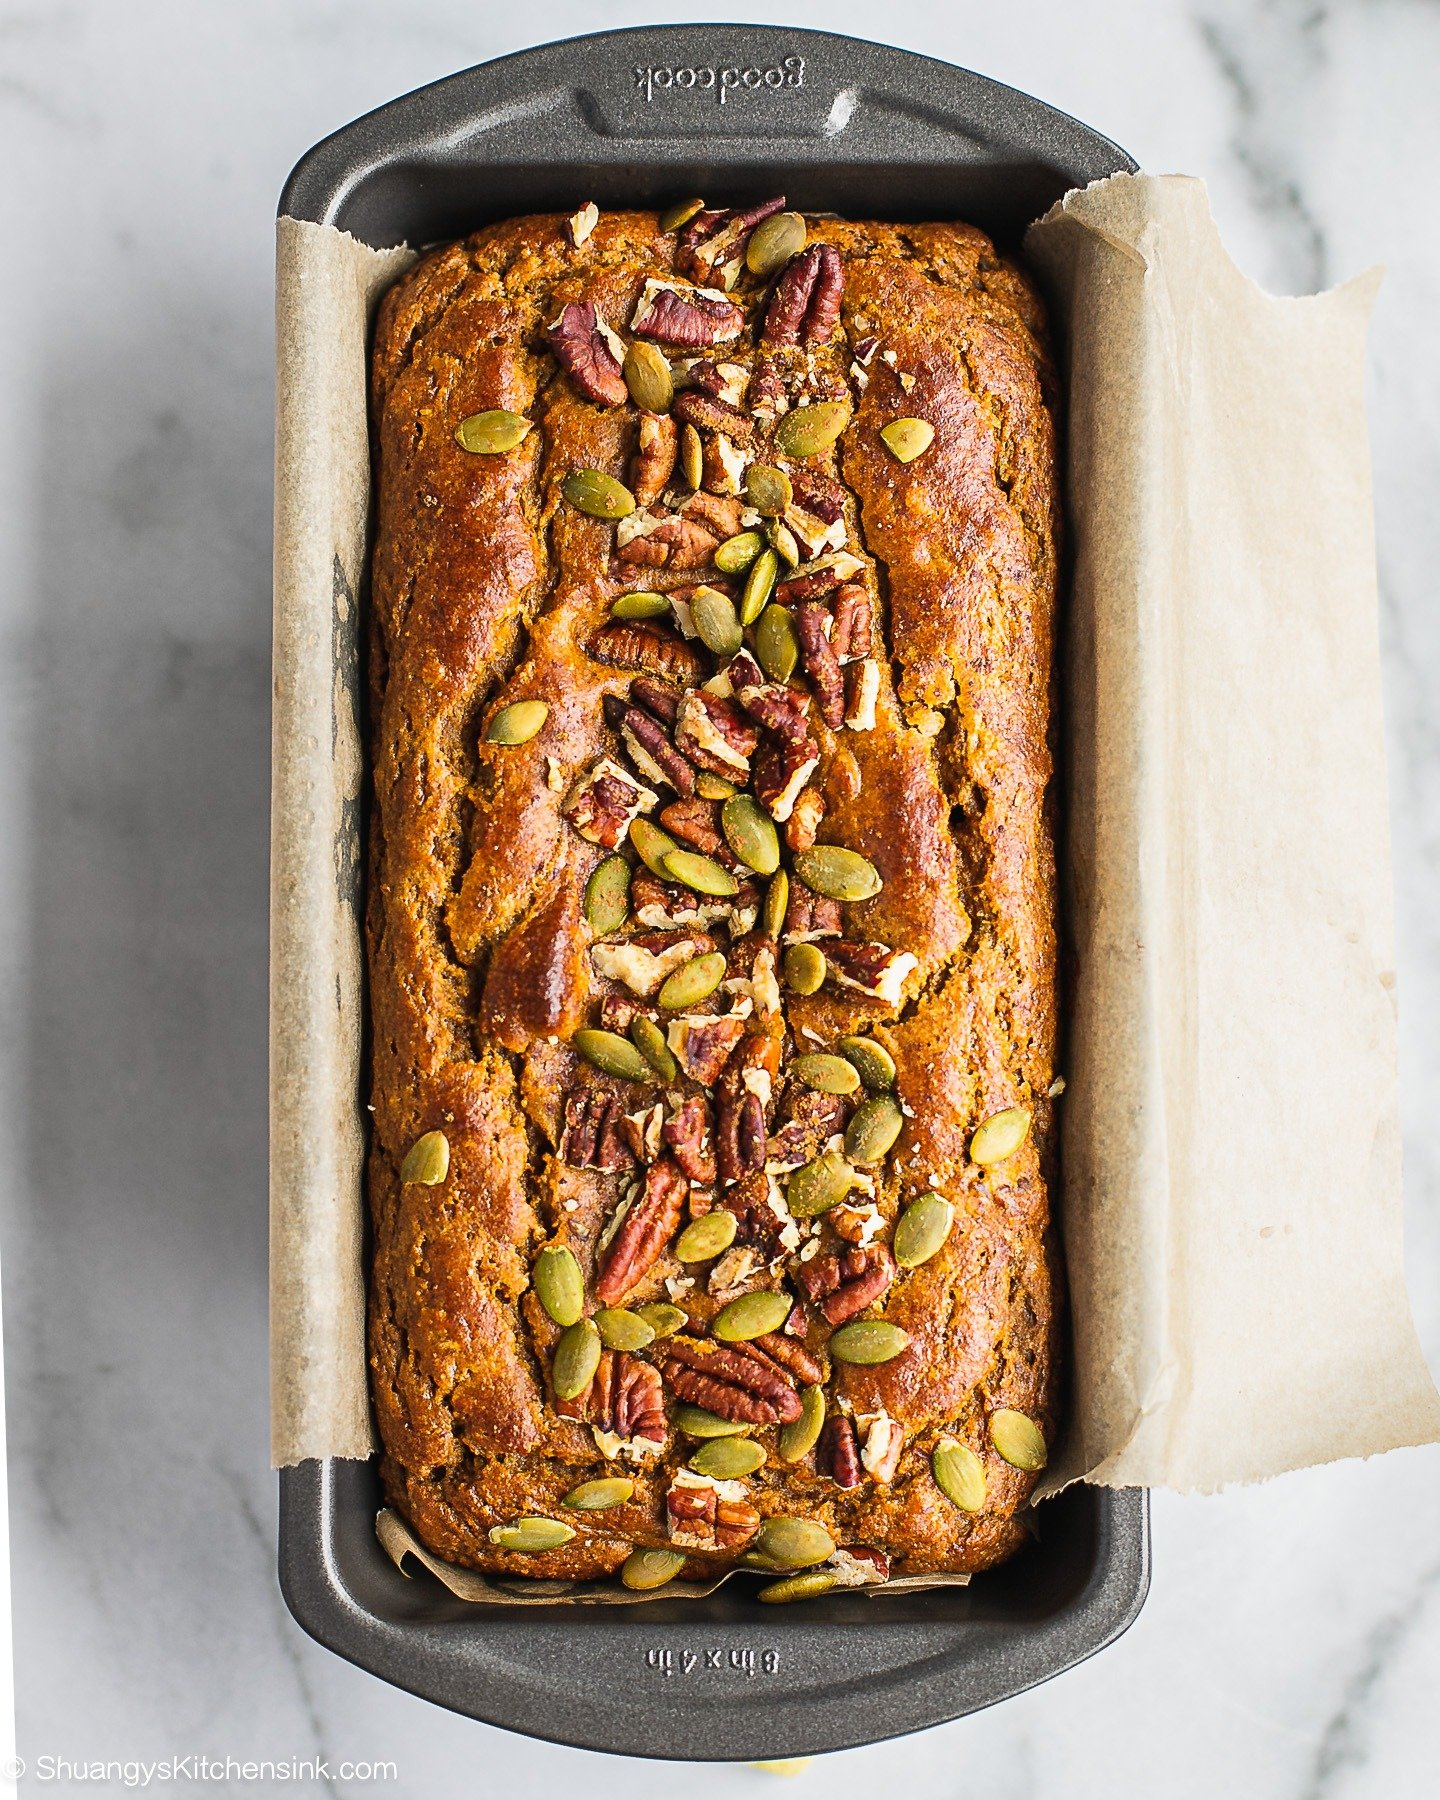 Instructions on how to make sweet potato bread step by step. A loaf of freshly baked healthy bread topped with pecans and pumpkin seeds.